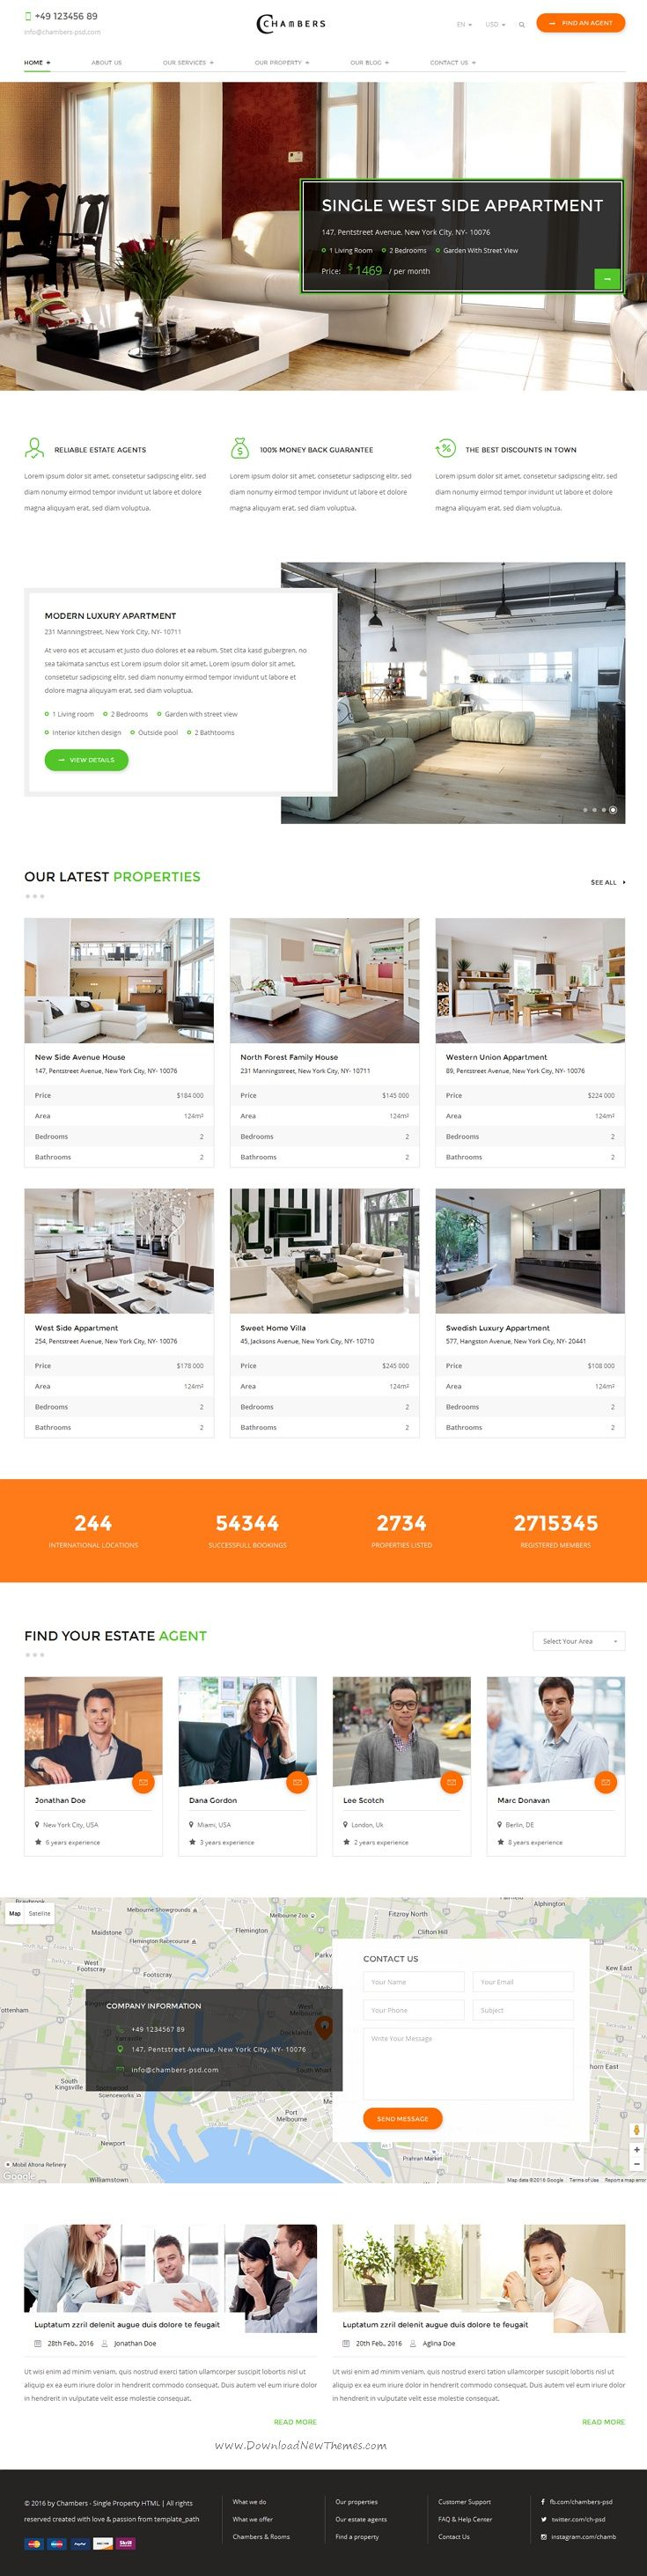 Chambers is a professionally coded responsive bootstrap template for property, rent, listing real estate website.